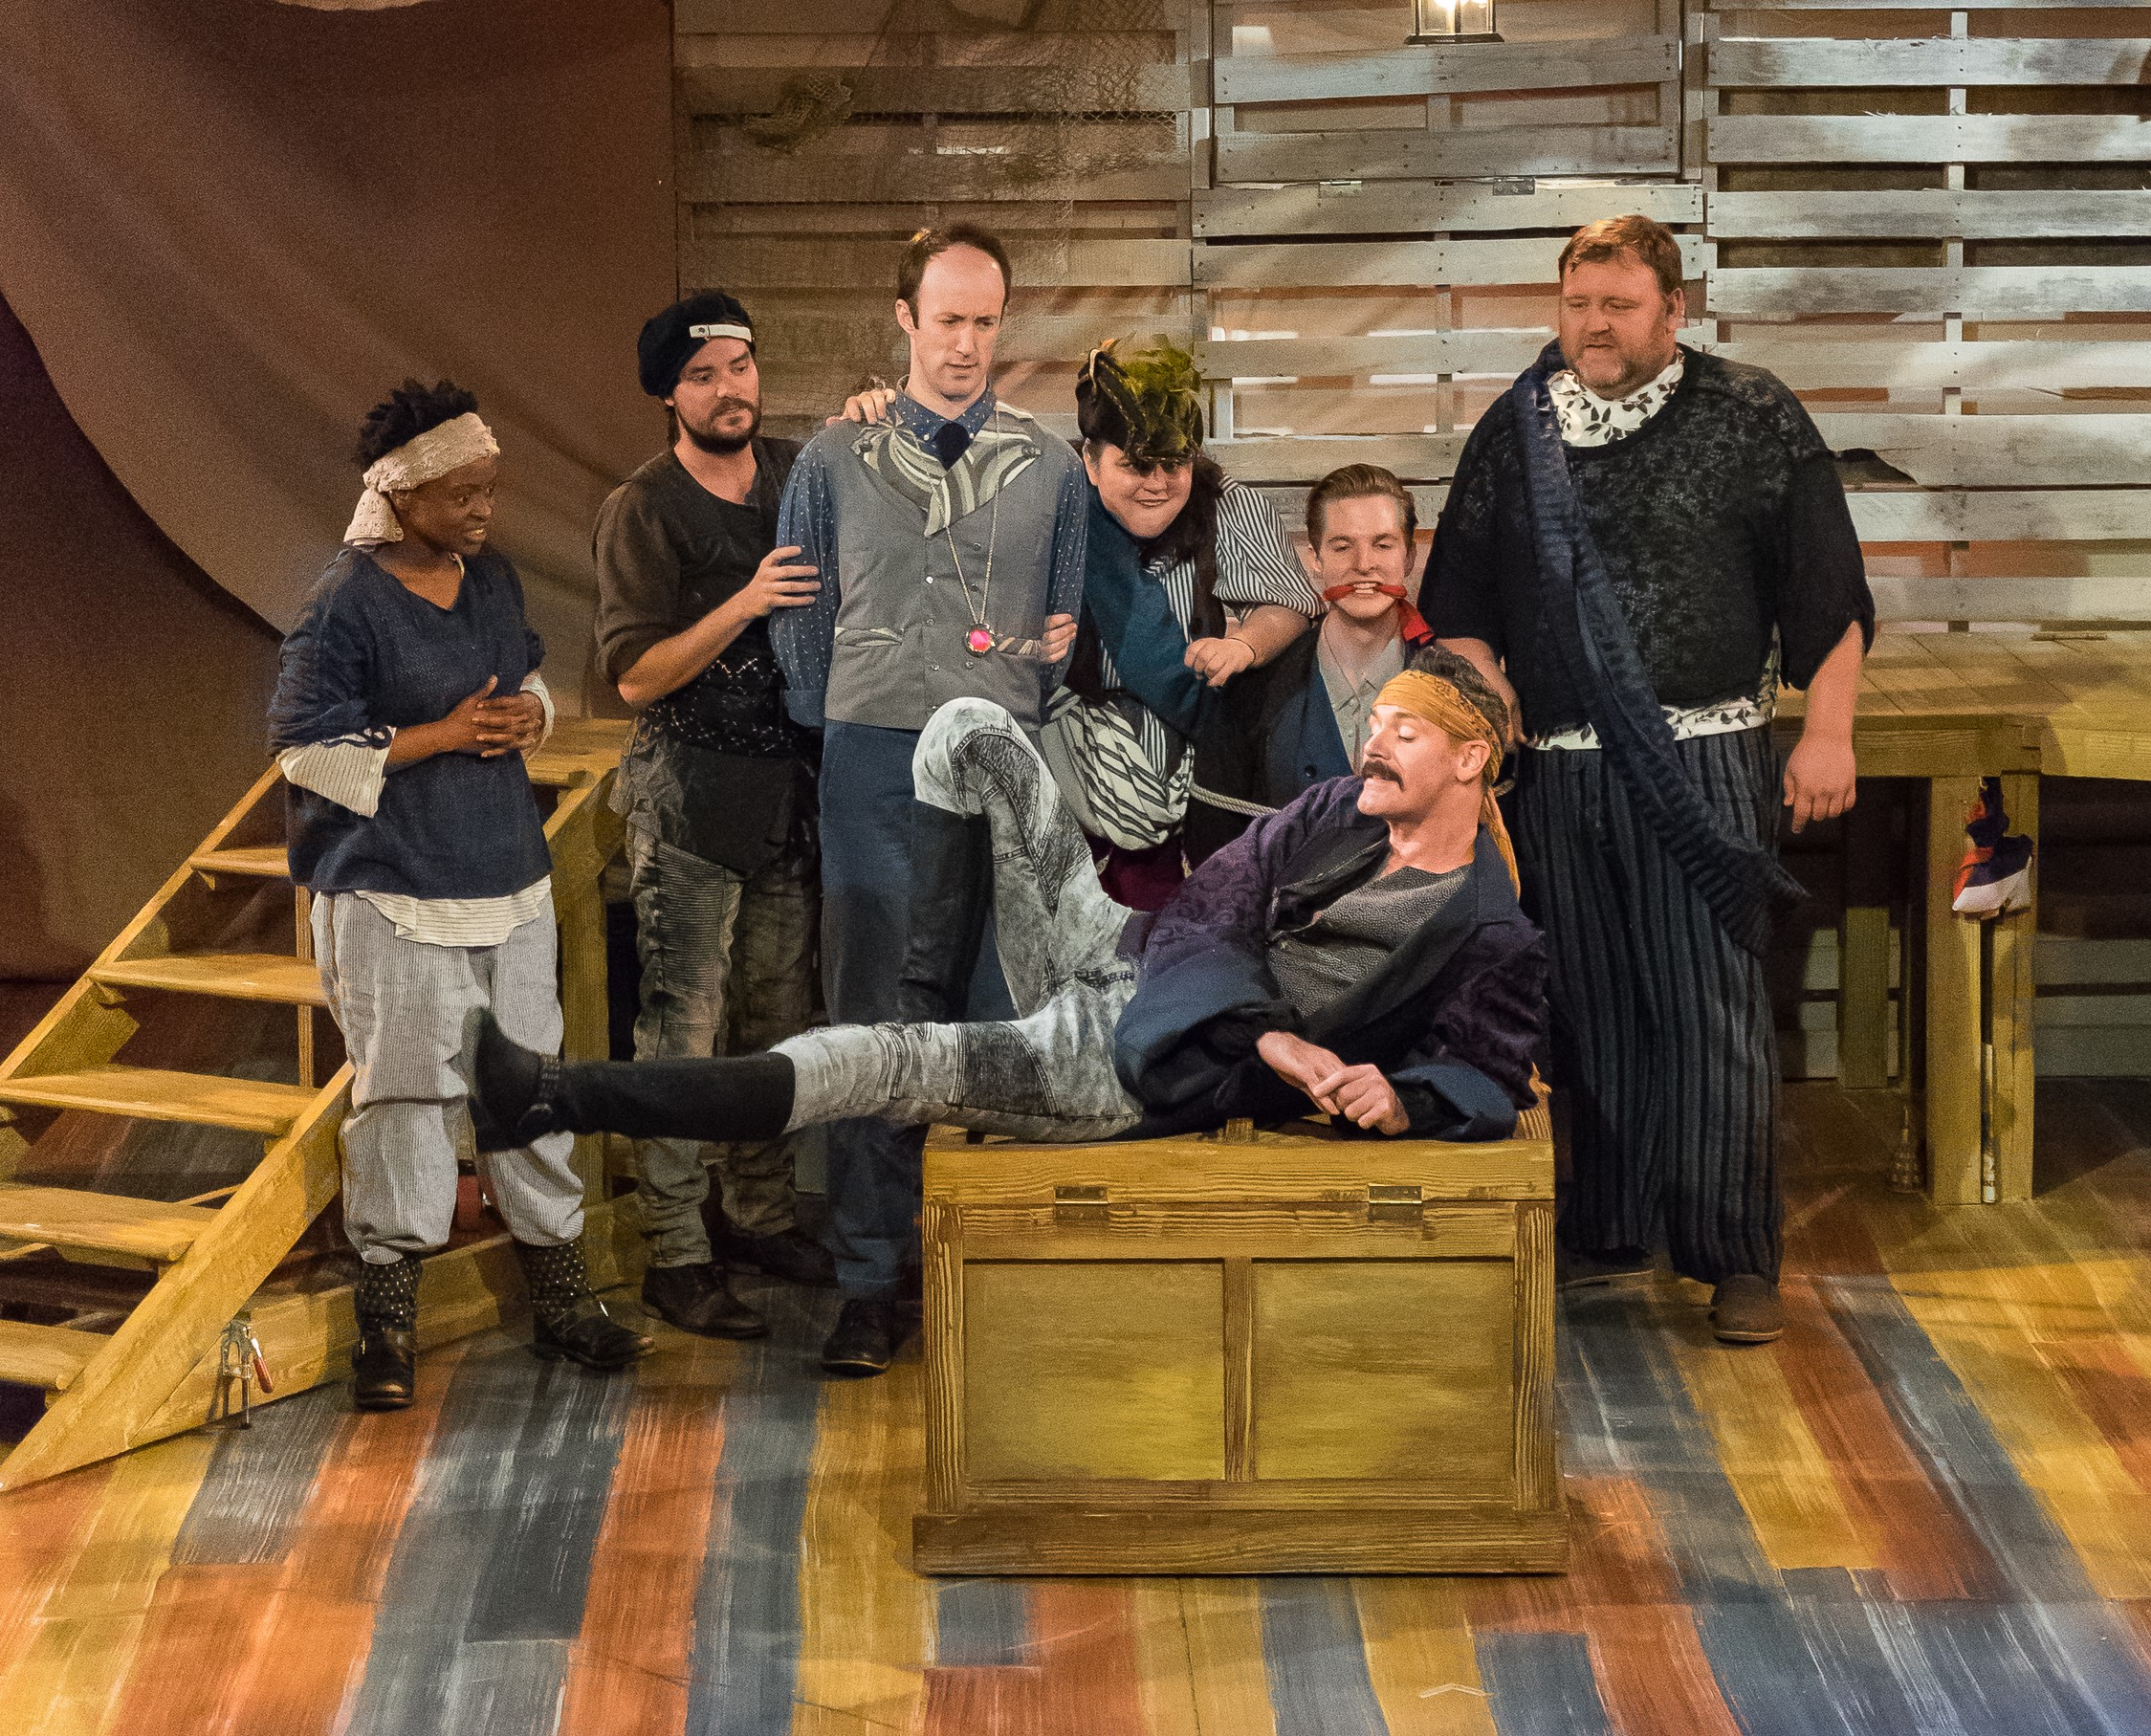 Black Stache (Matthew Quinn, foreground), l. to r.: Smee (Miss Sandra Mhlongo), Slank (Thomas Daniels), Lord Aster (James Patrick Nelson), Mrs. Brumbake (Colleen Welsh), Capt. Robert Falcon Scott (Nicholas Dana Rylands), Alf (James Fairchild)